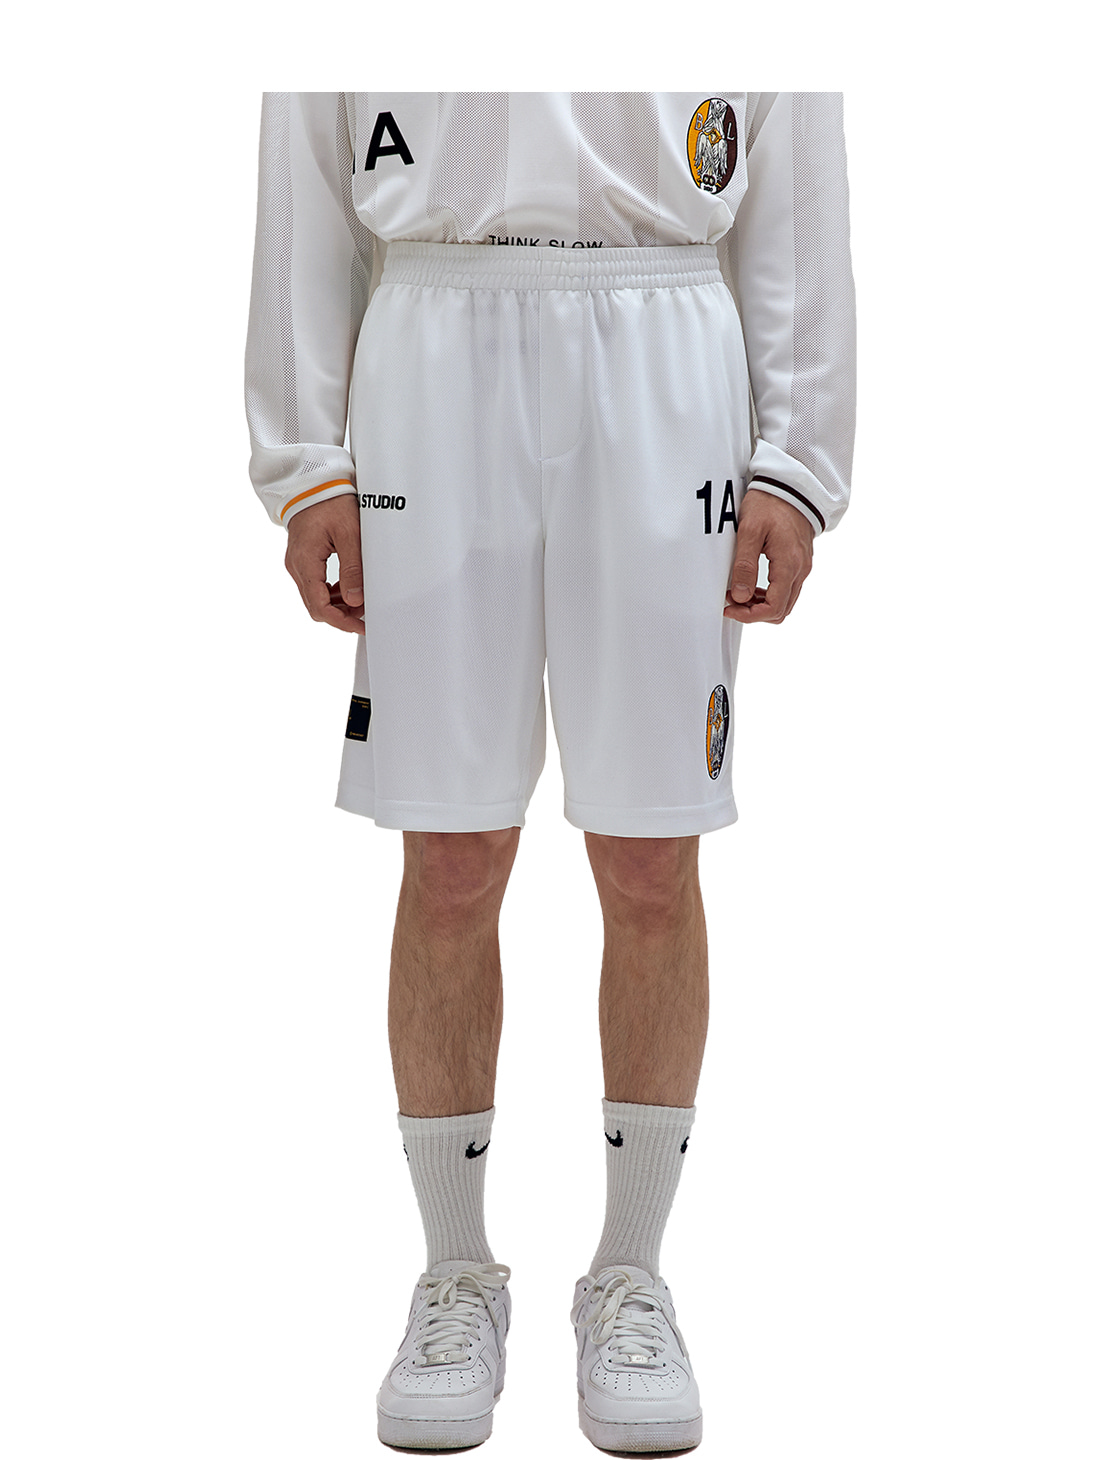 GOALSTUDIO SSFC UNIFORM PANTS - WHITE(A)